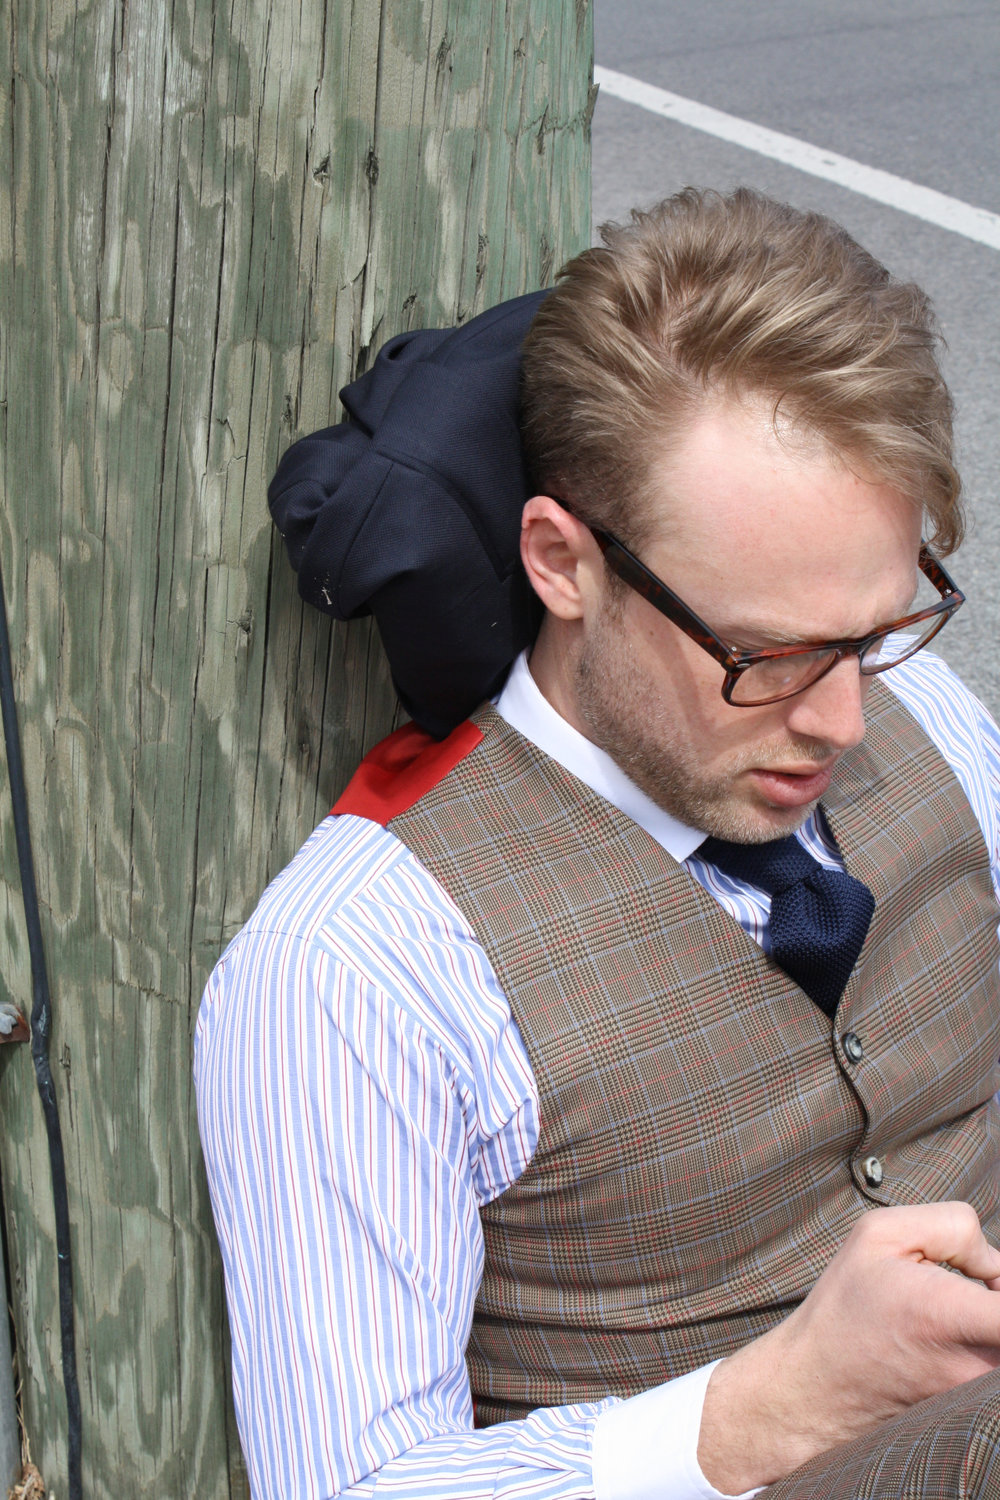 bespoke suit travel suit glasses blue striped shirt